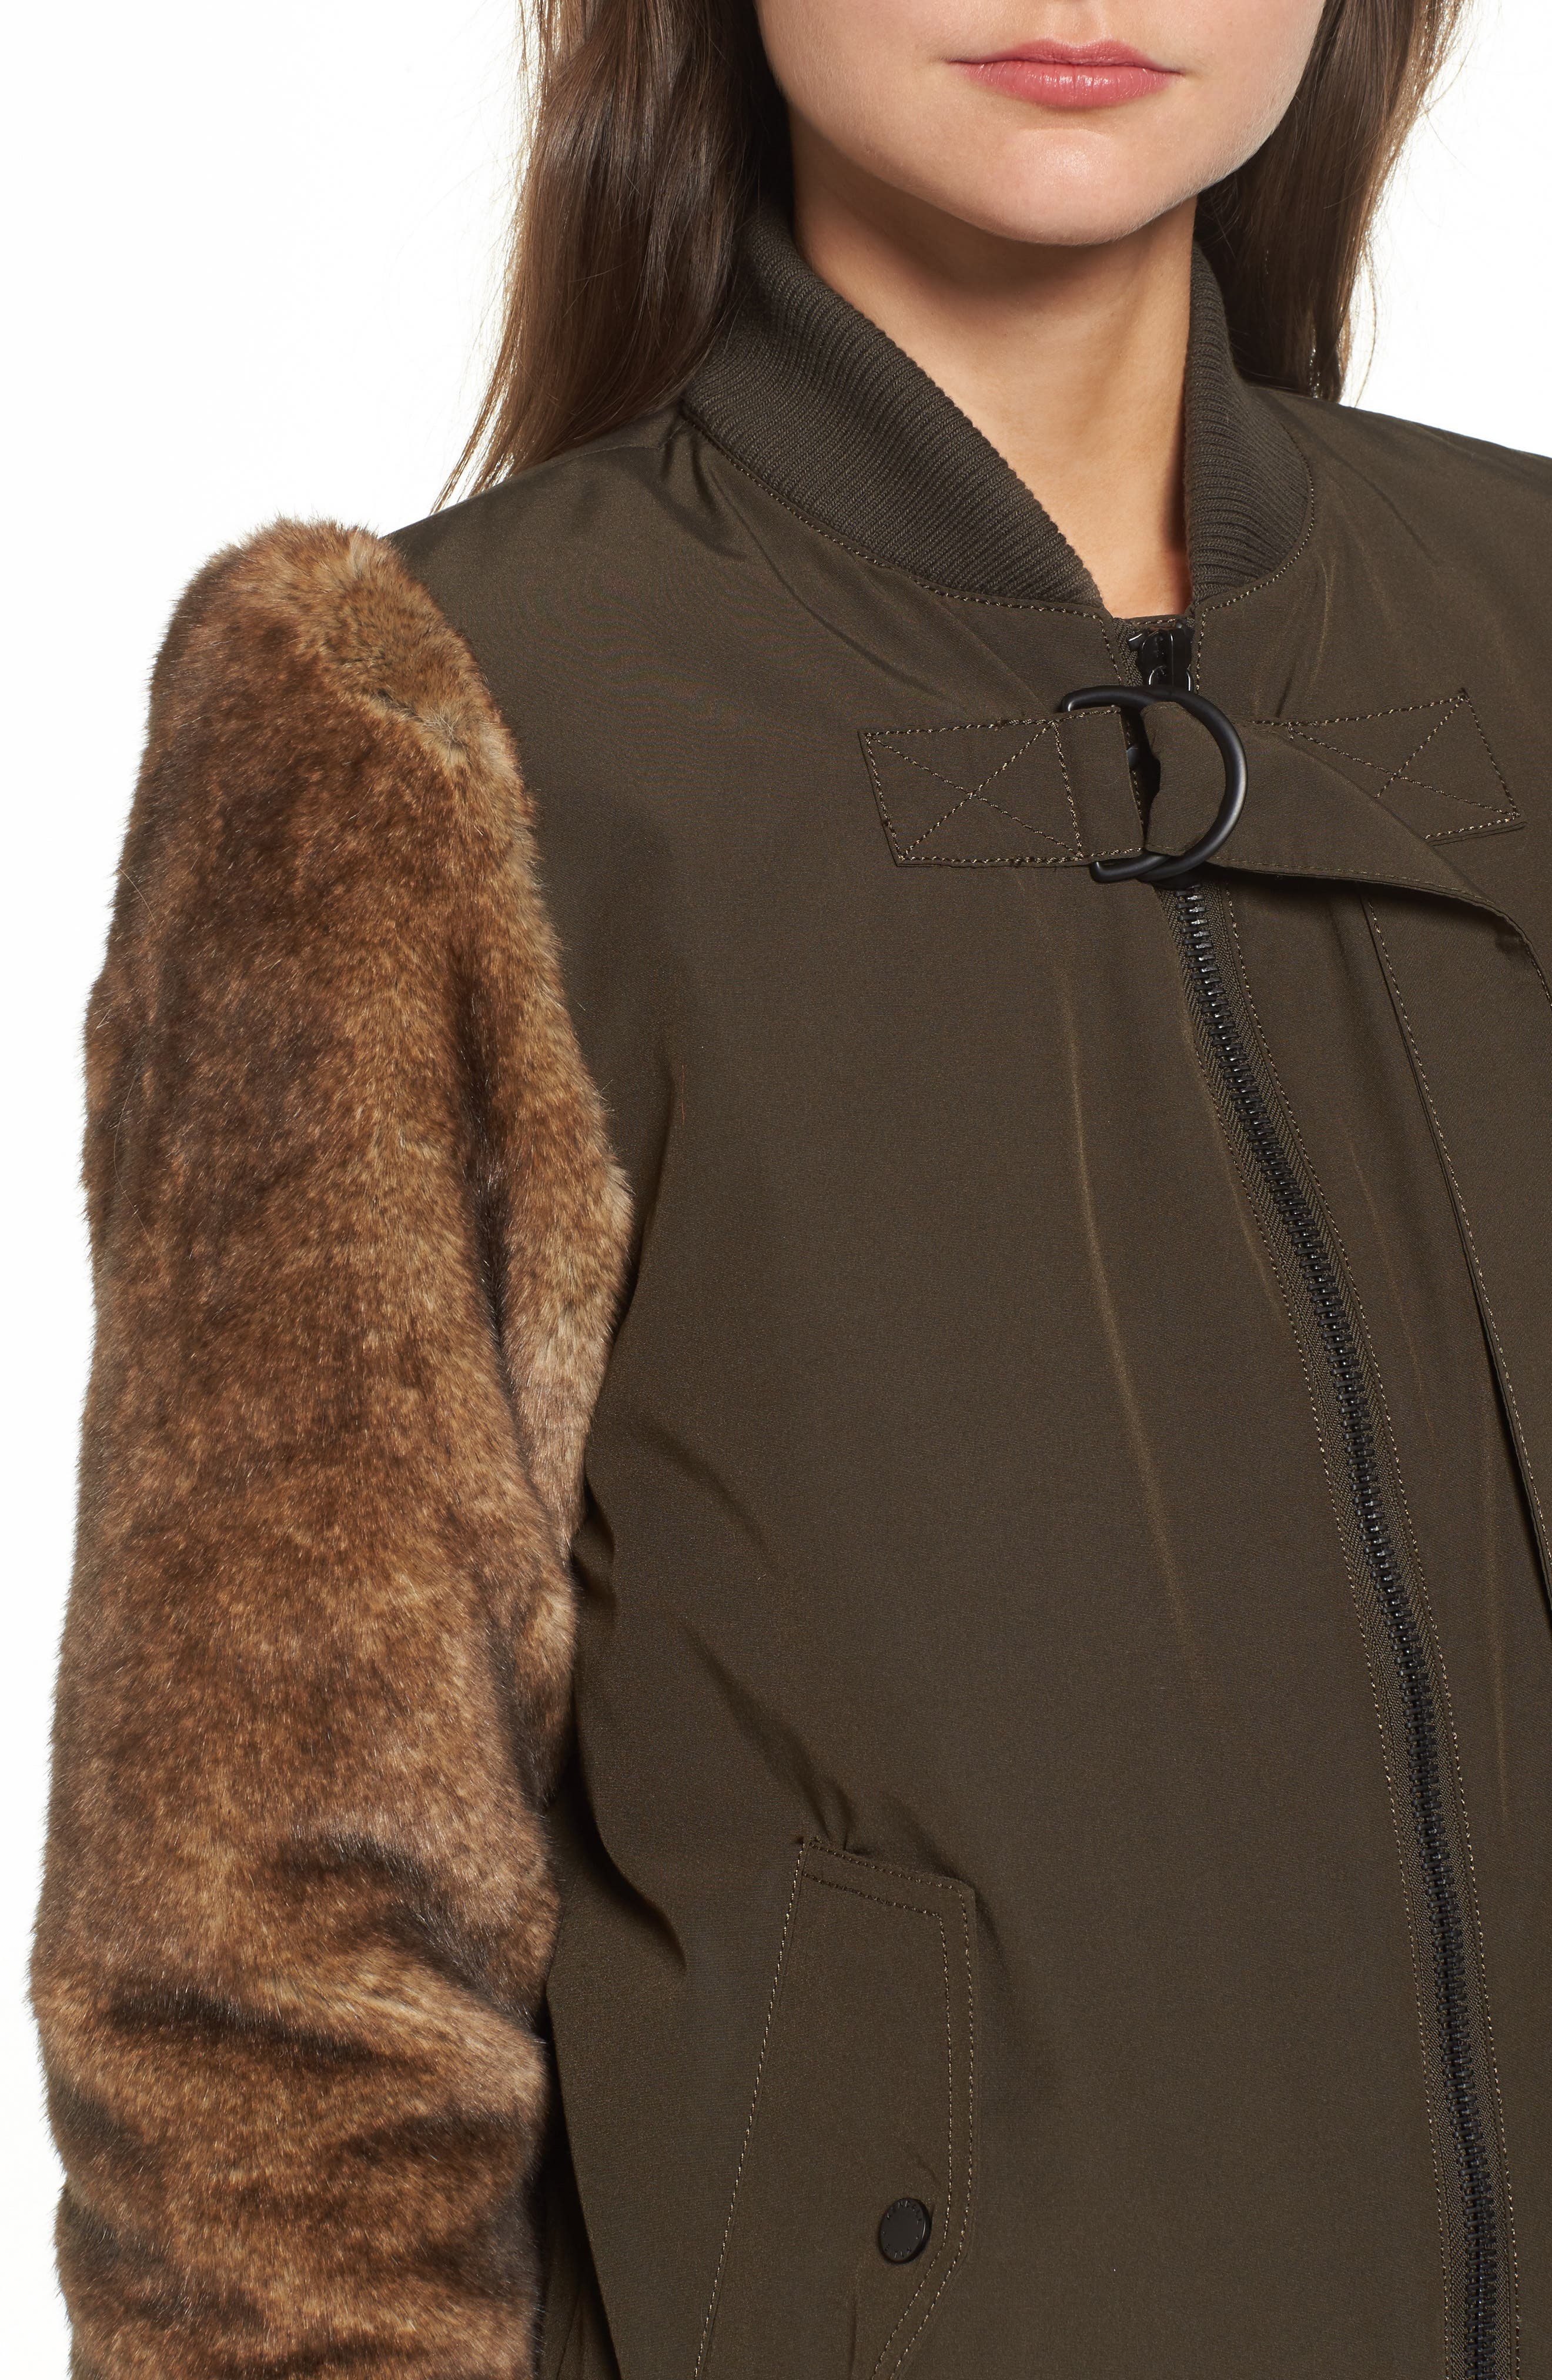 Faux Fur Sleeve Bomber Jacket,                             Alternate thumbnail 4, color,                             Army Green